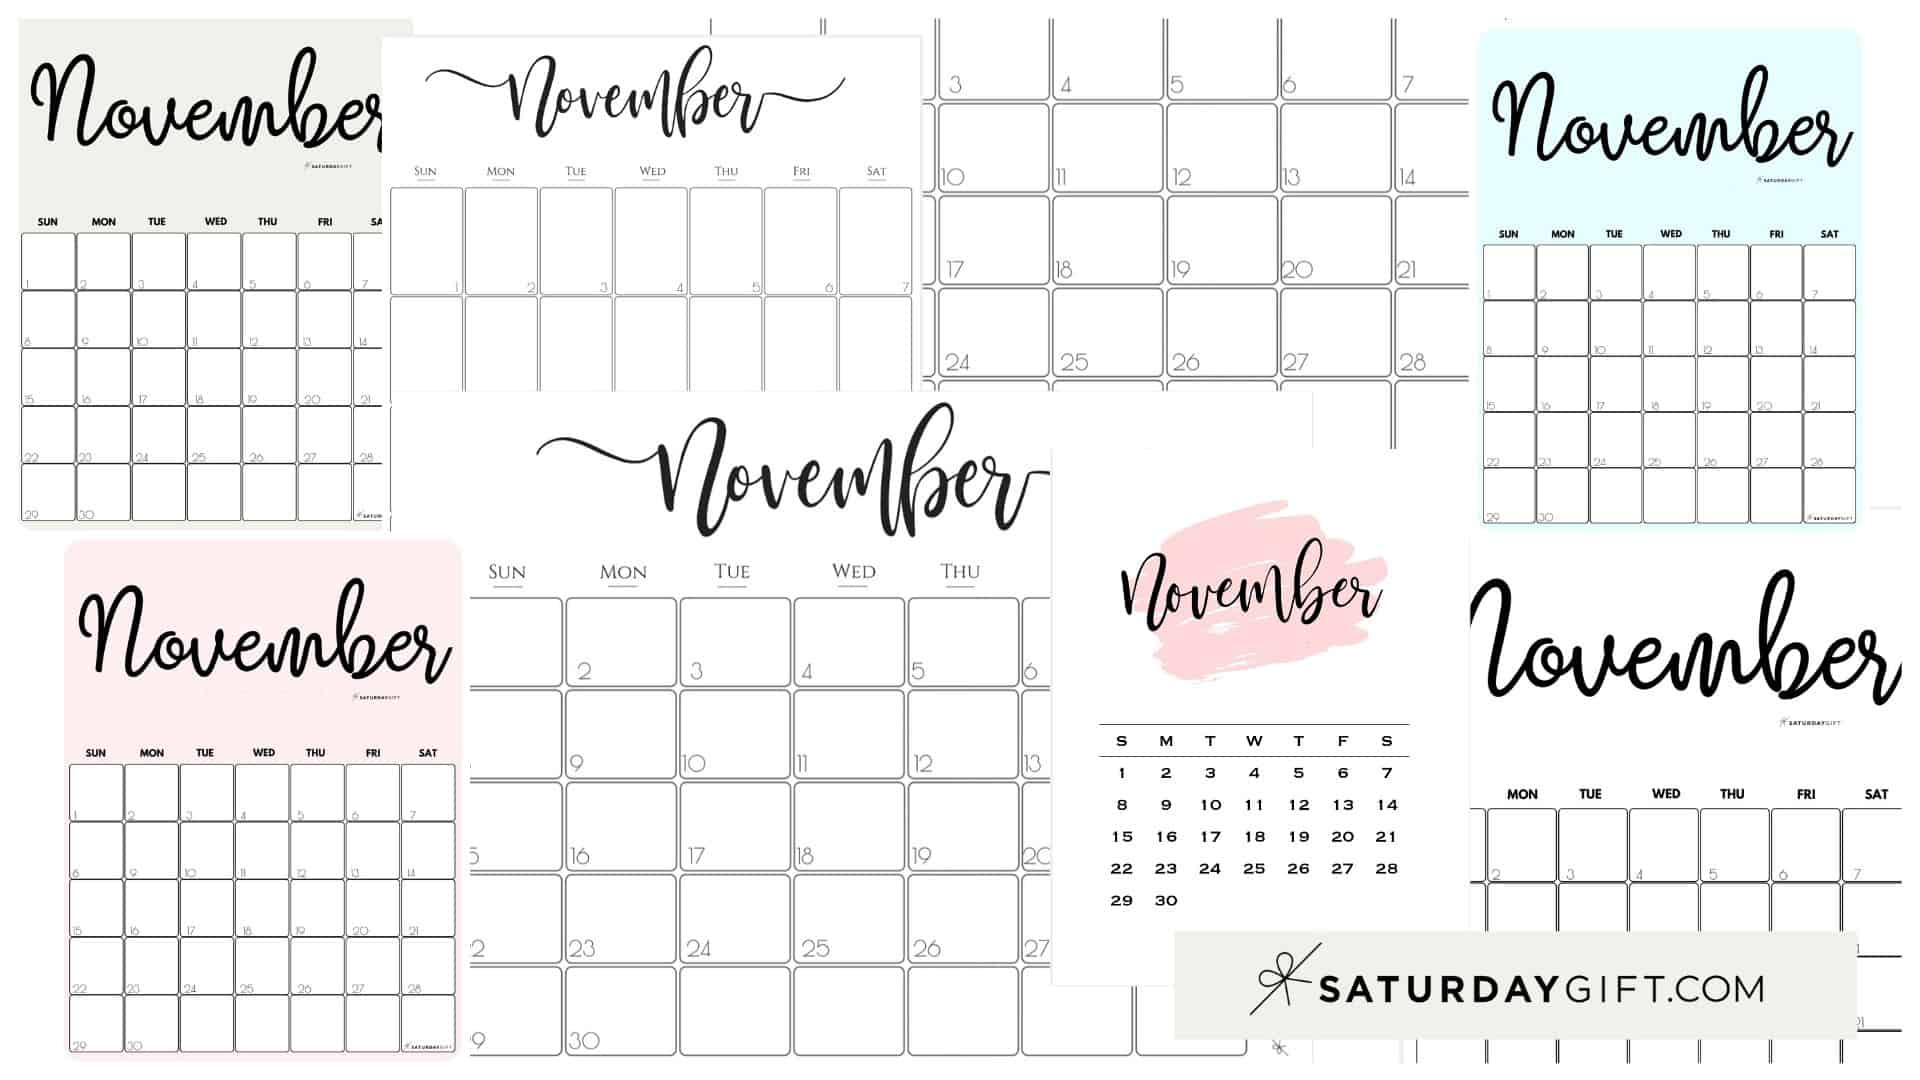 Cute (& Free!) Printable November 2021 Calendar | Saturdaygift